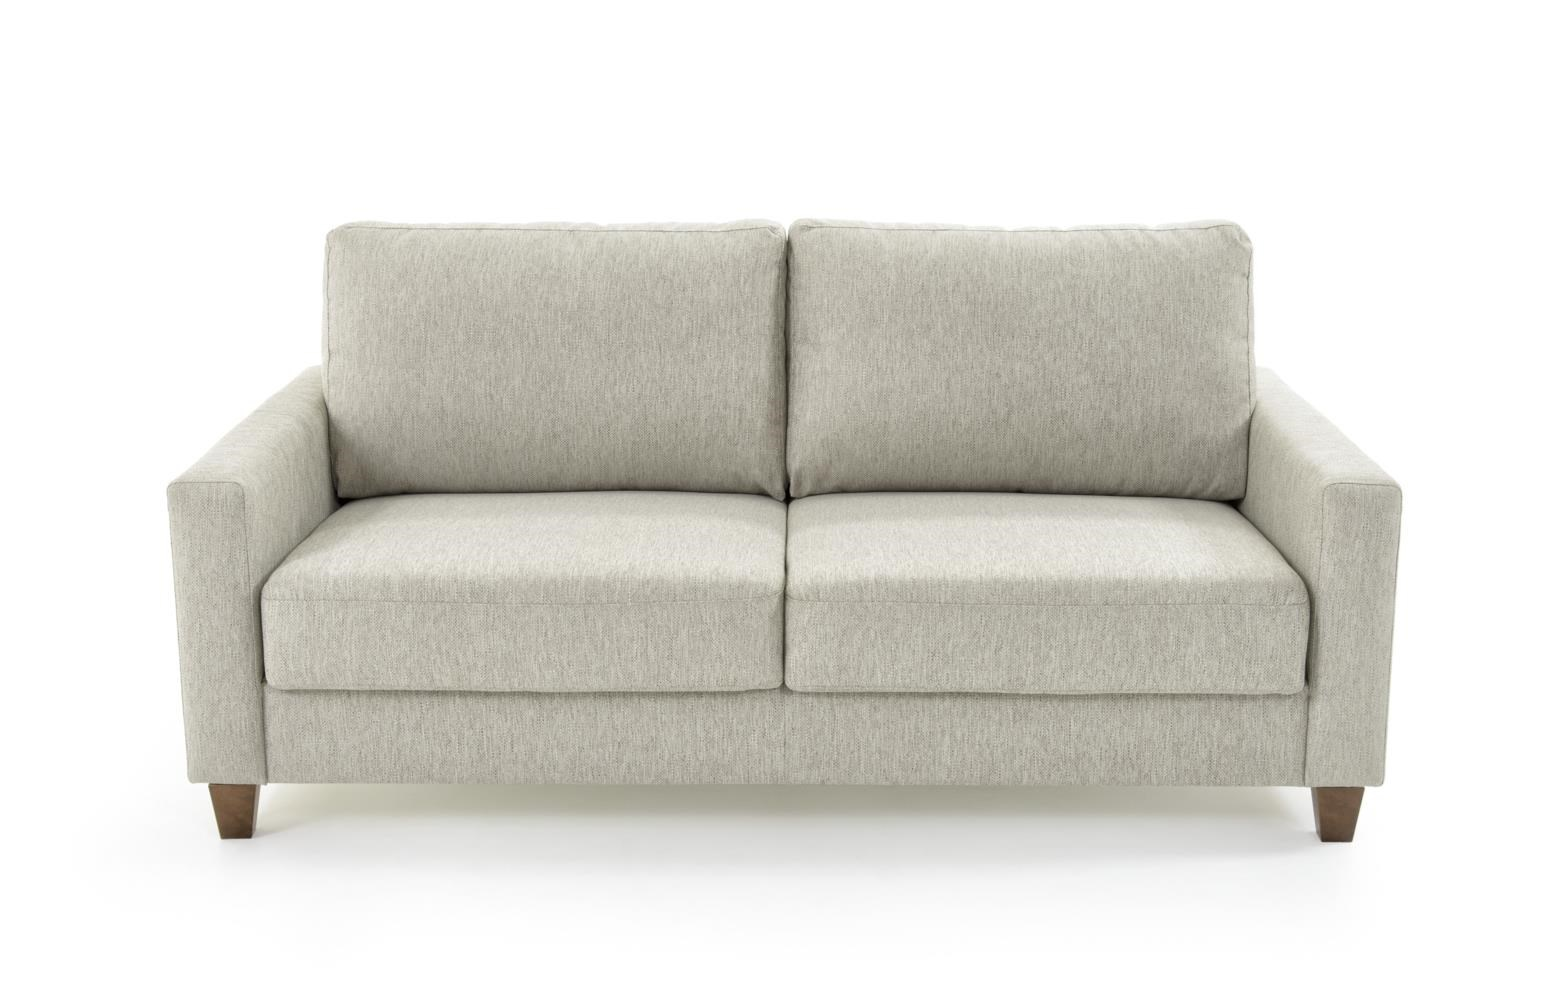 Nico Queen Size Sleeper Sofa by Luonto at Baer's Furniture